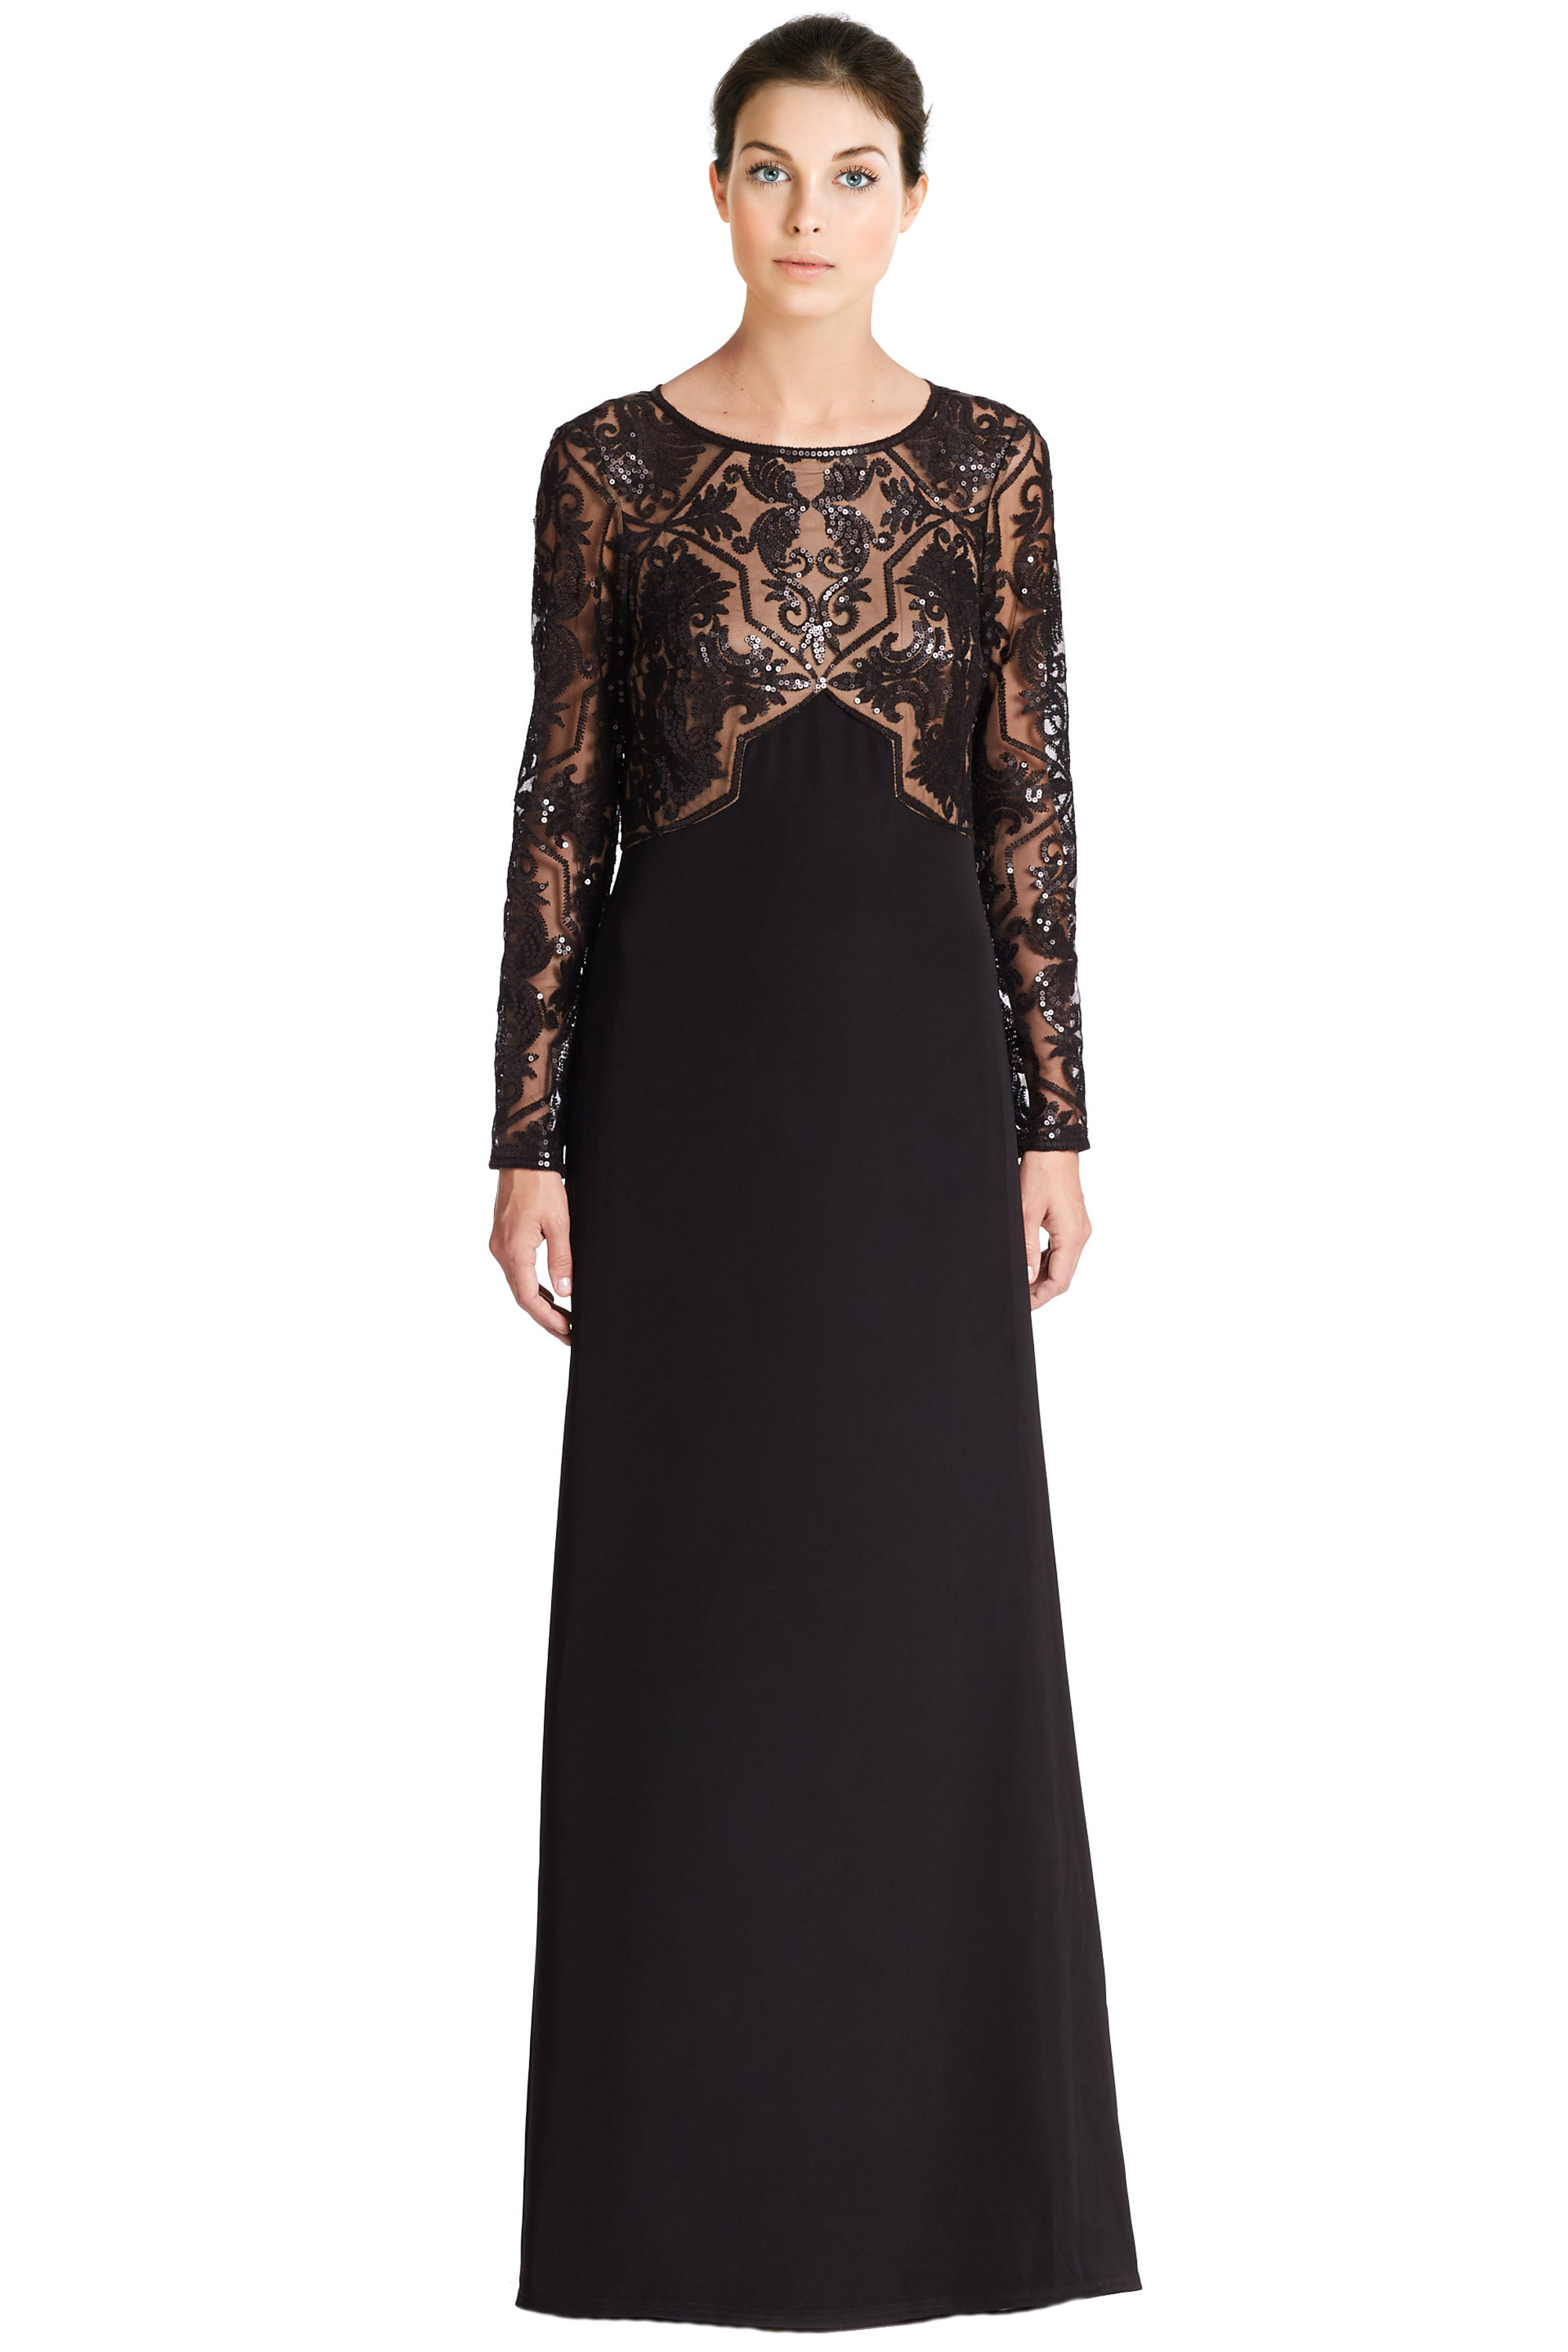 Tadashi Shoji Black Embellished Mesh Bodice Long Sleeve Evening Gown ...